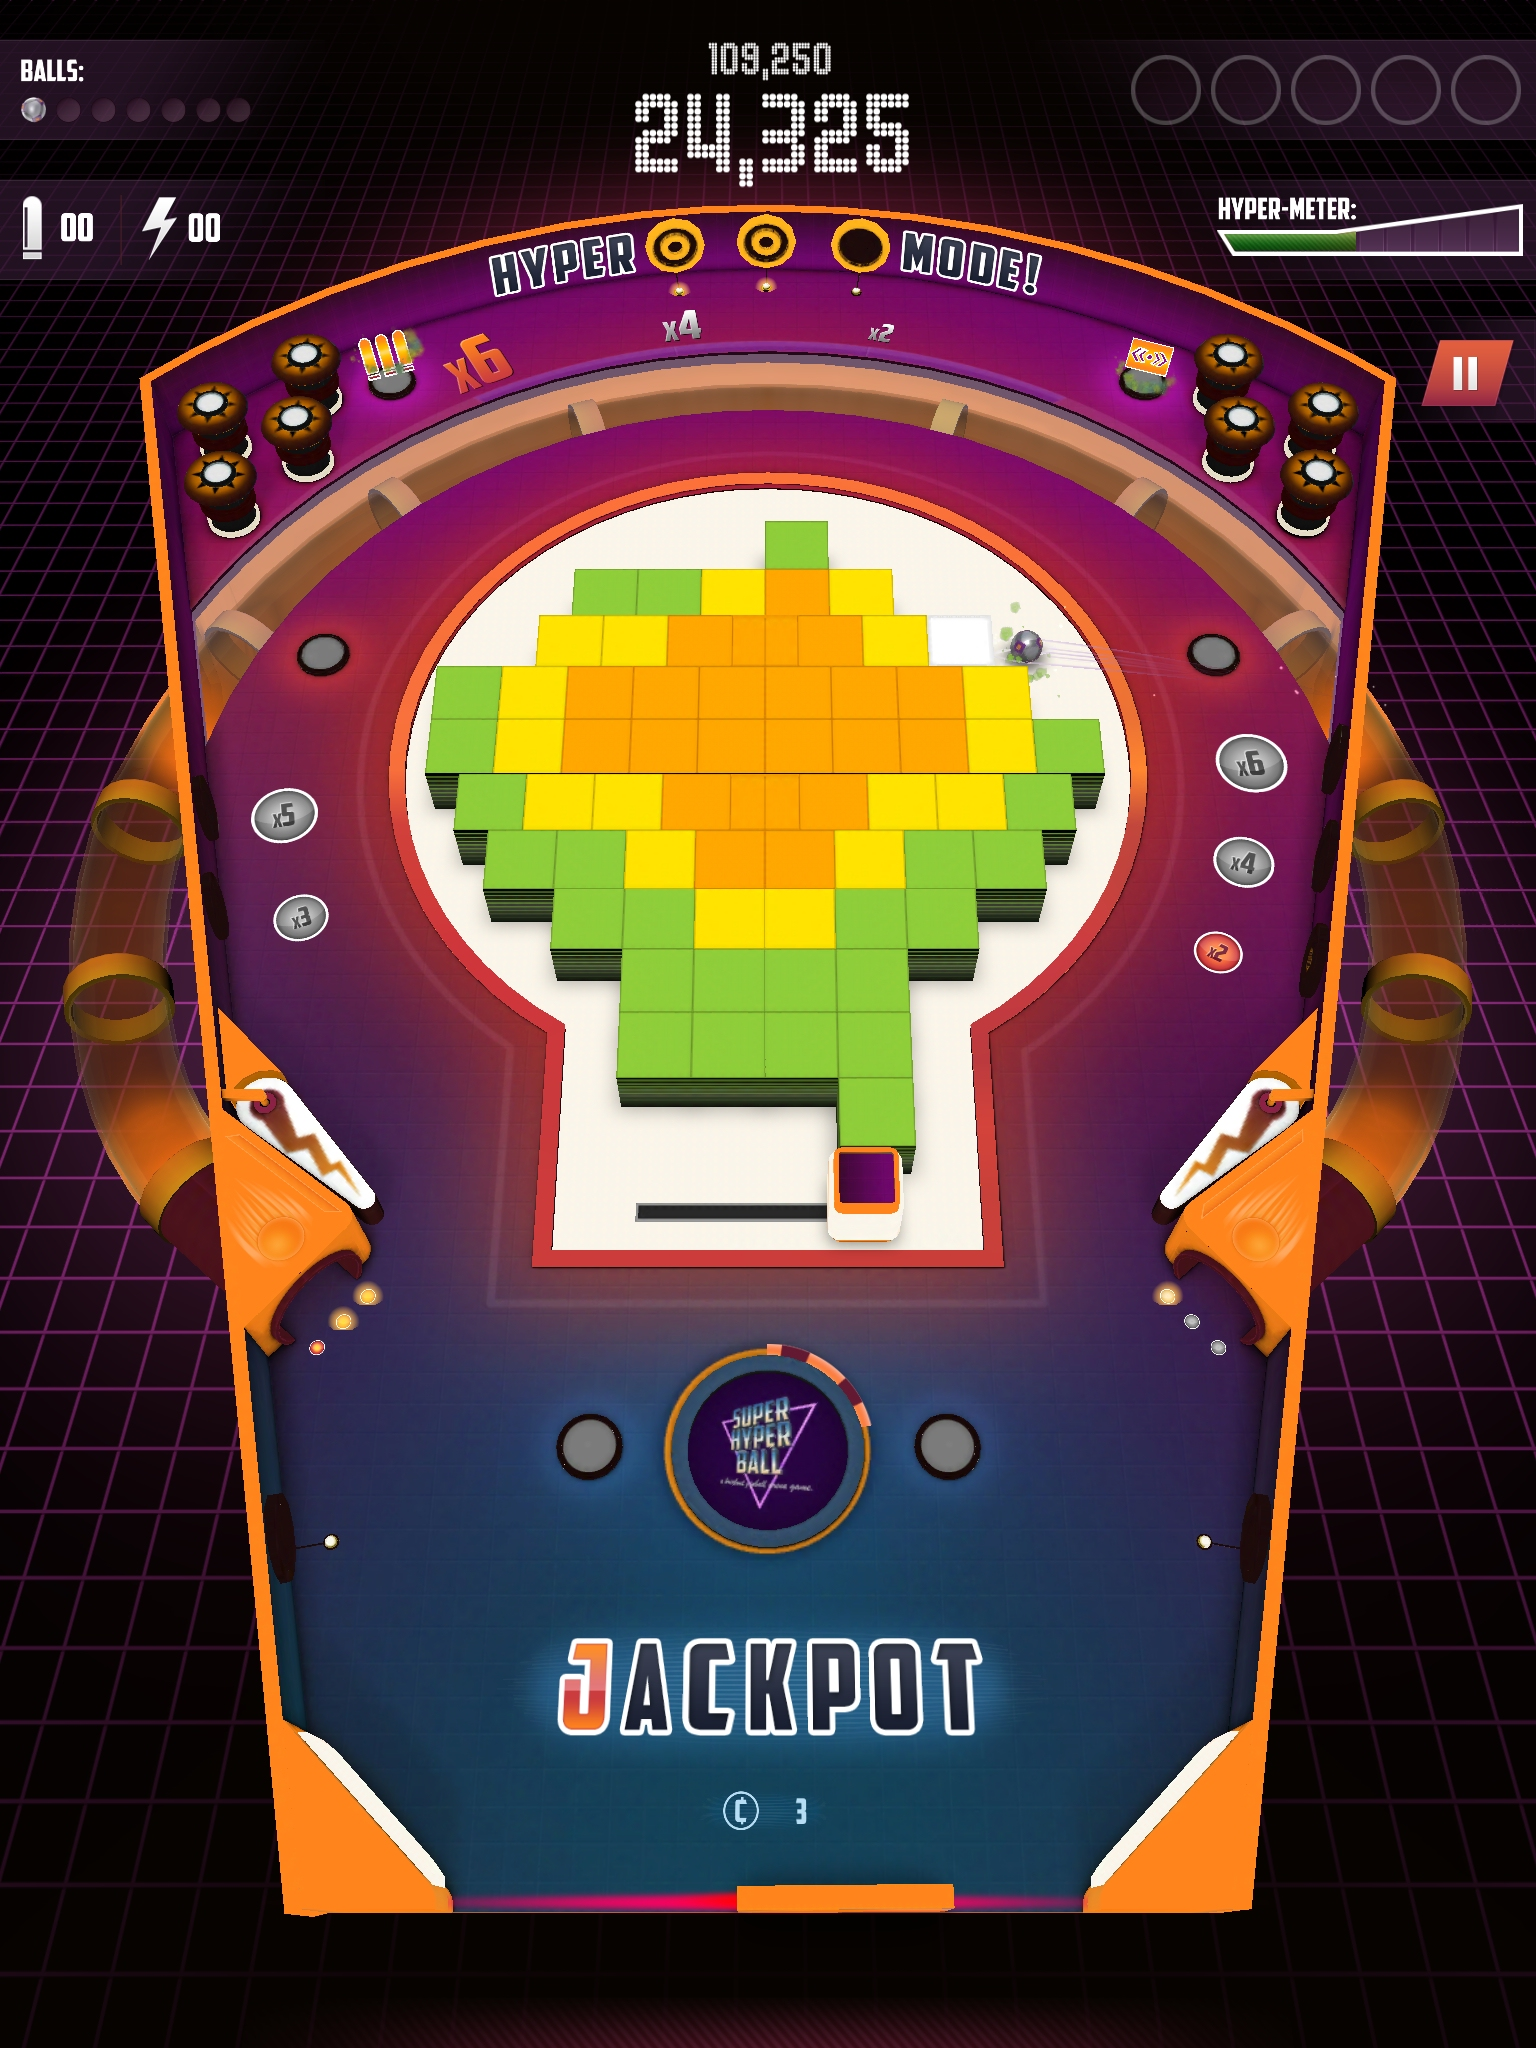 Super Hyper Ball 2 review - Should pinball ever be crossed with Breakout?